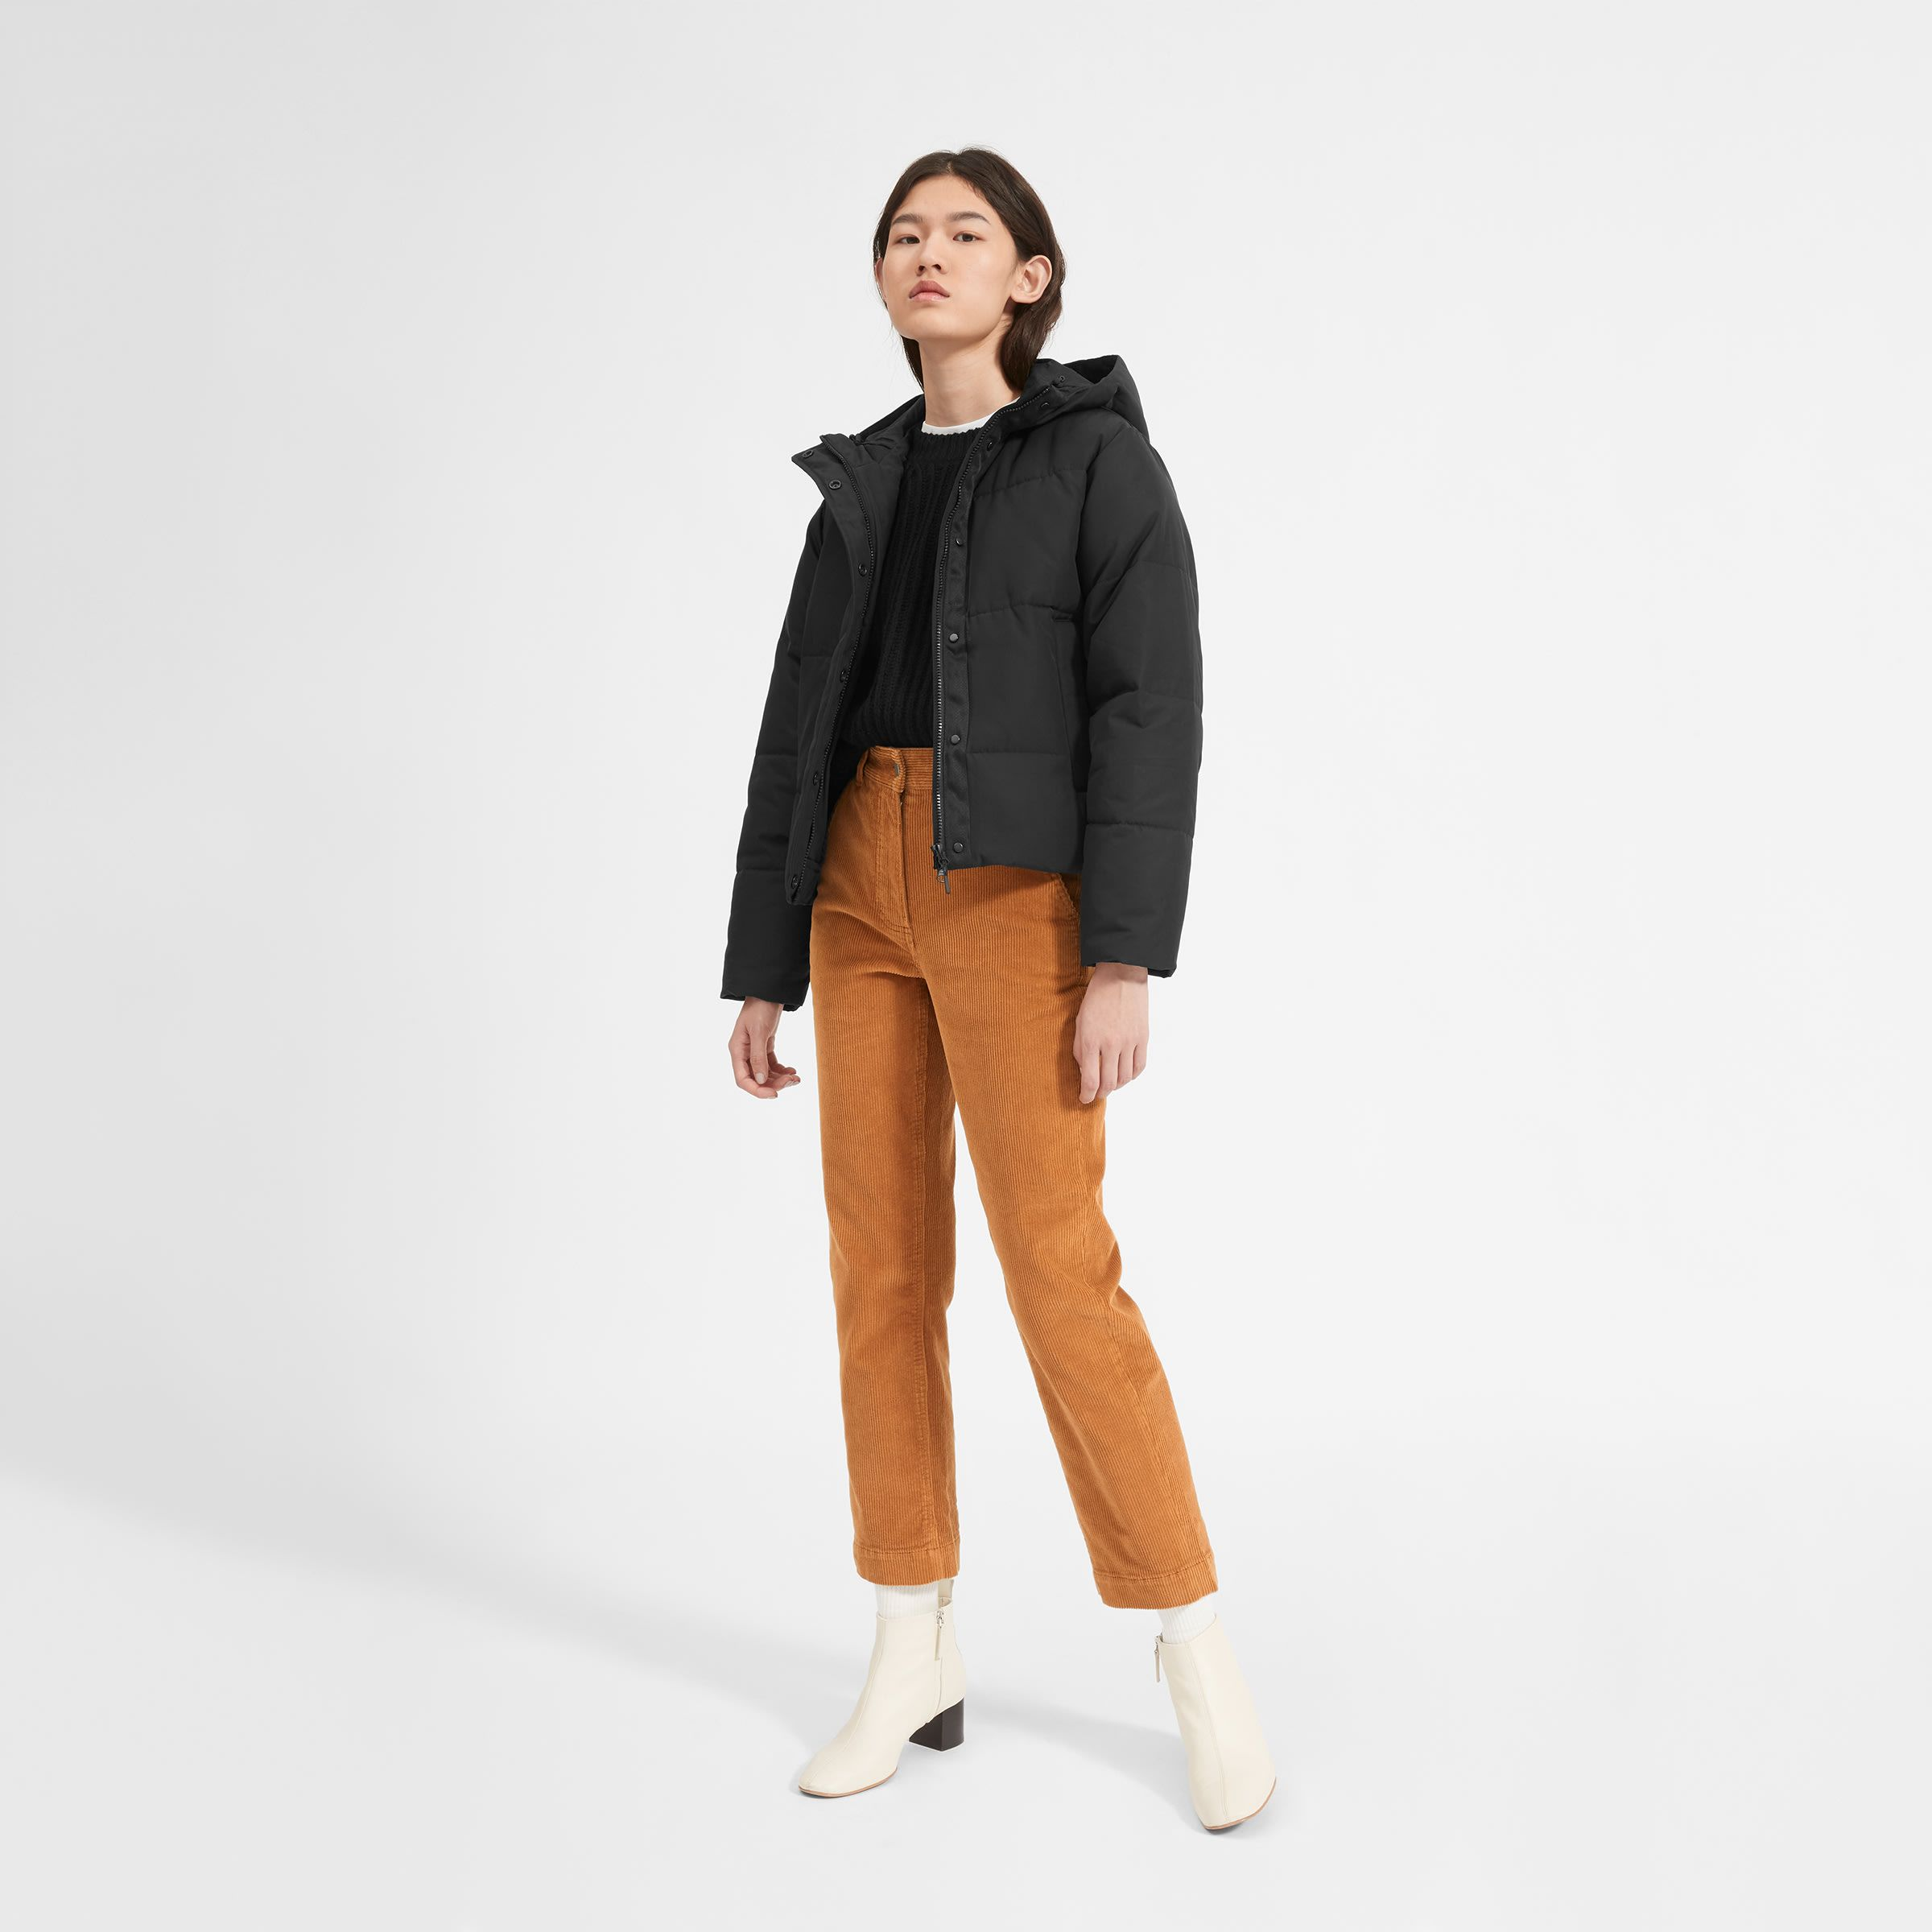 A More Sustainable Take On A Cool Classic Our Puffer Jacket Features A Cropped Boxy Shape Insulated Short Puffer Jacket Outfit Puffer Jacket Outfit Fashion [ 2400 x 2400 Pixel ]